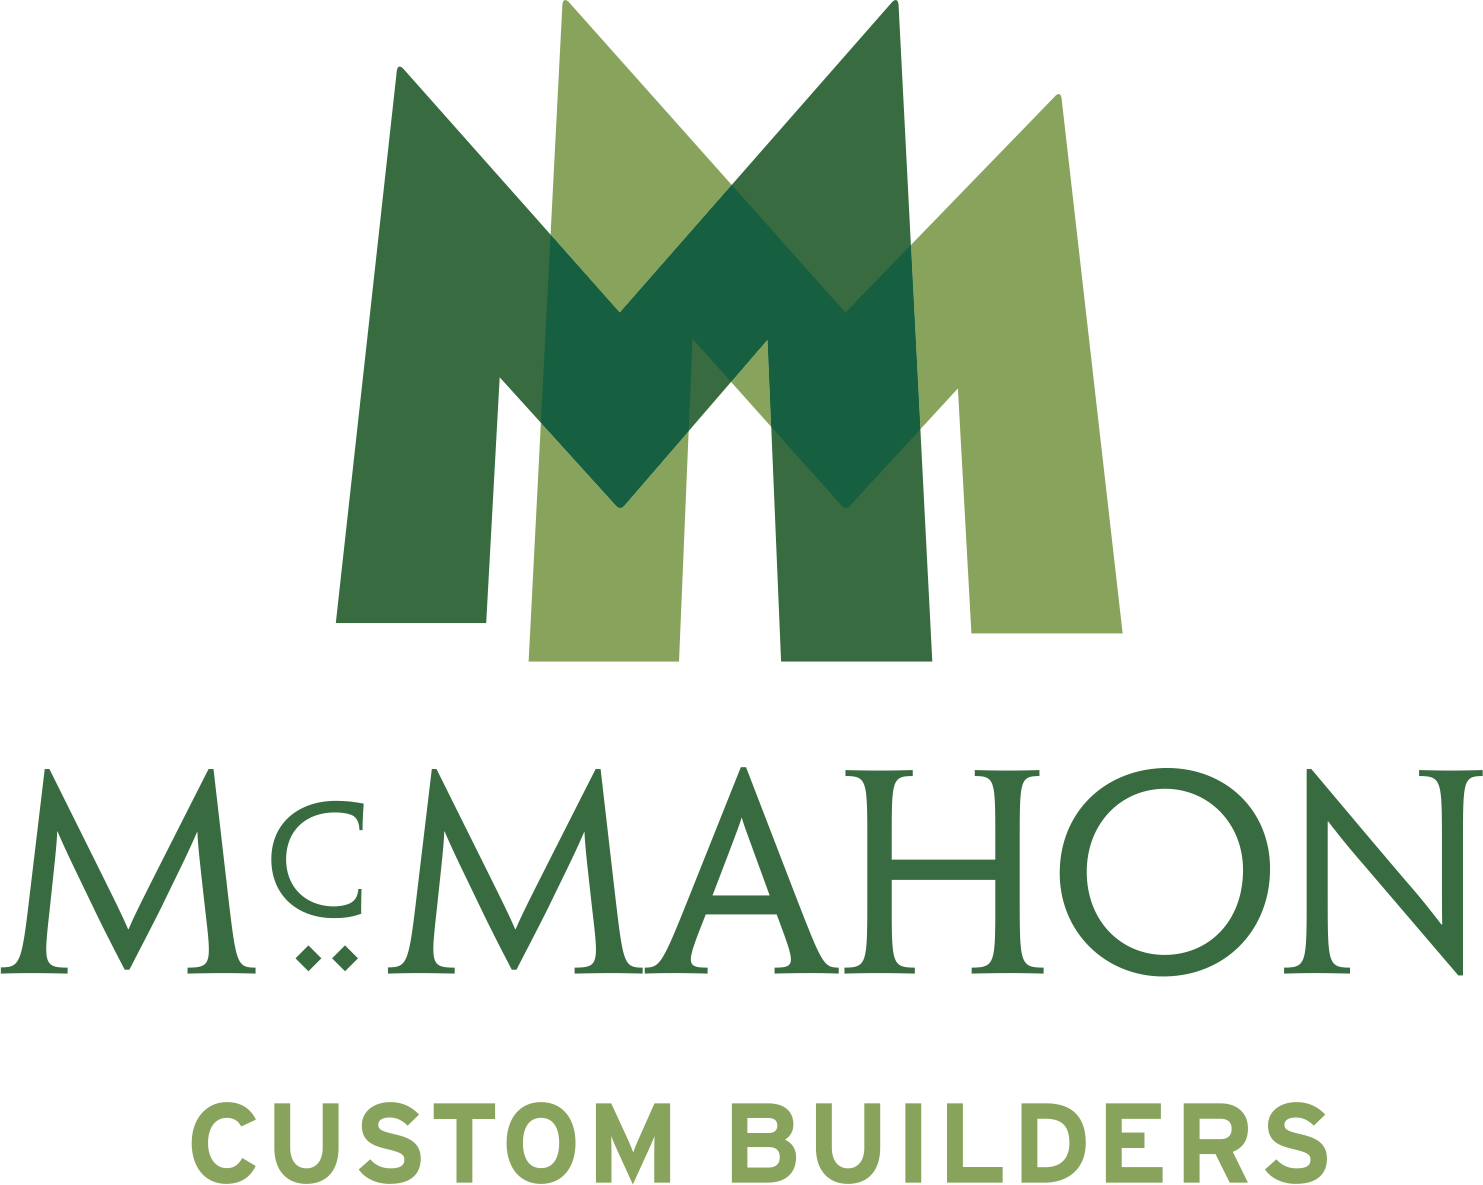 McMahon Custom Builders